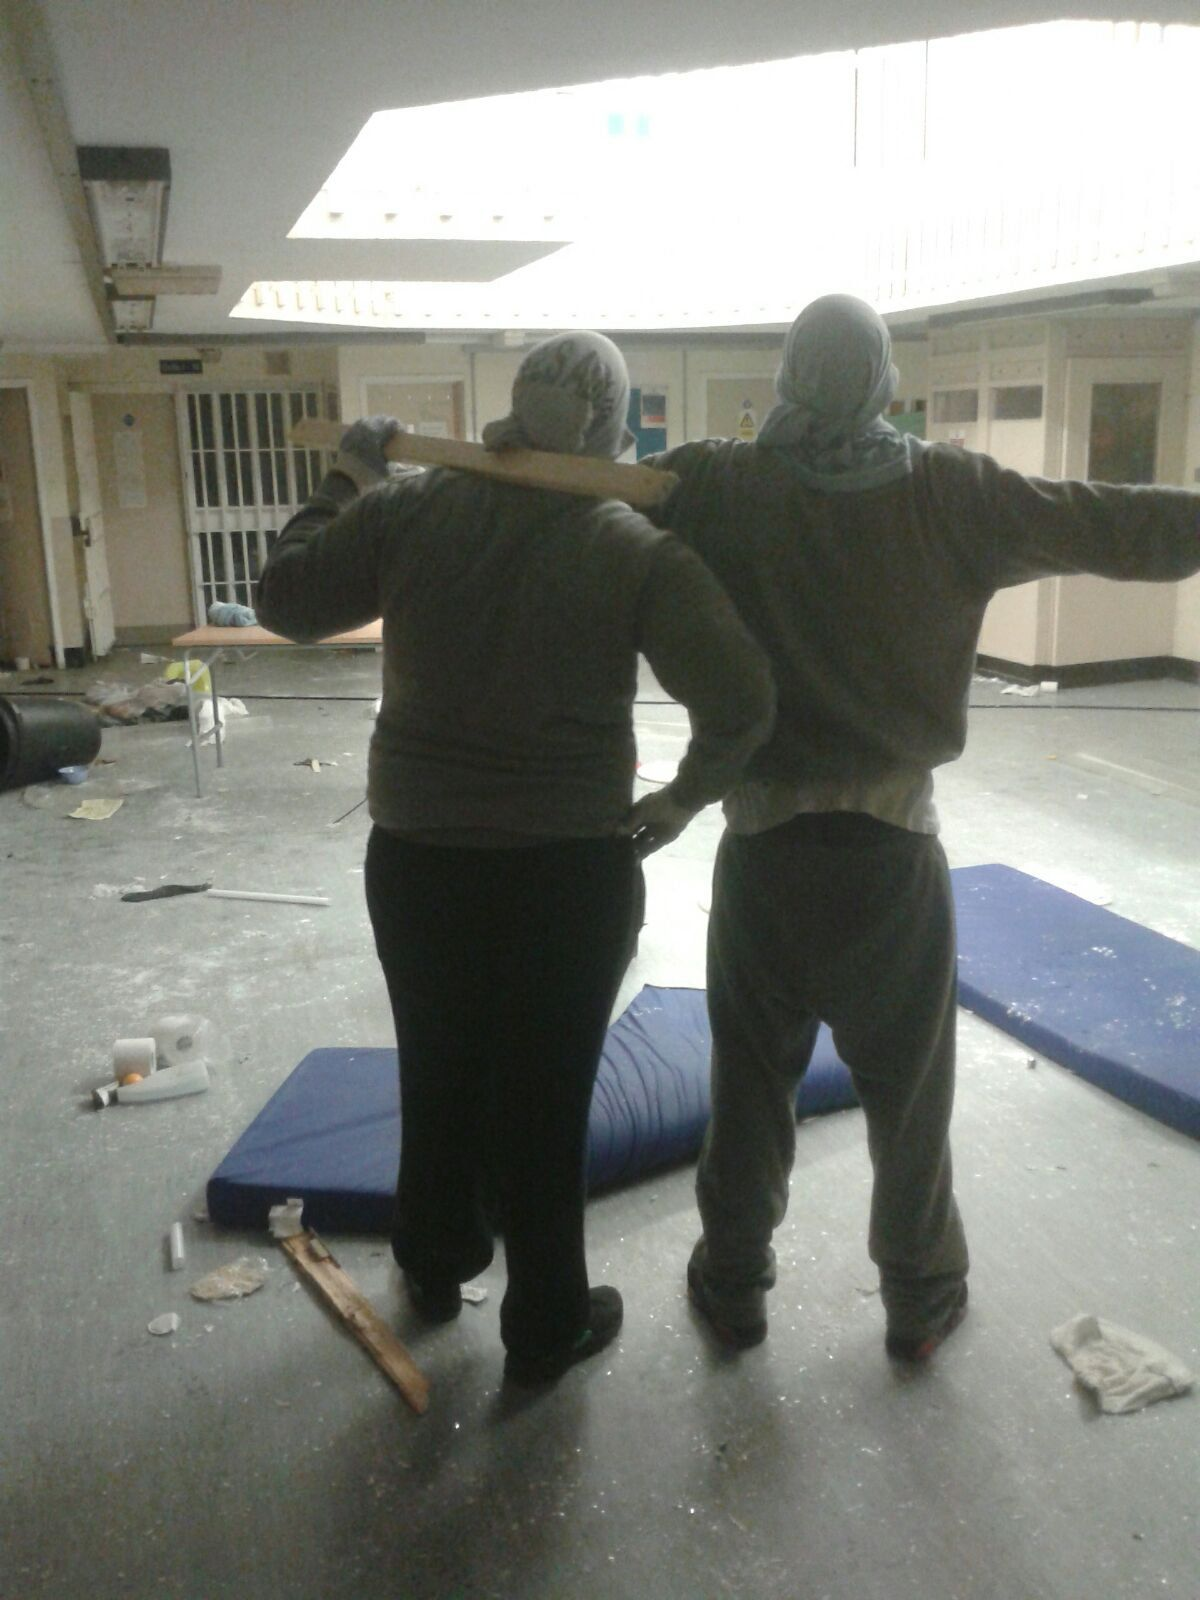 A wing at HMP Swaleside in Kent was taken over by rioting prisoners in